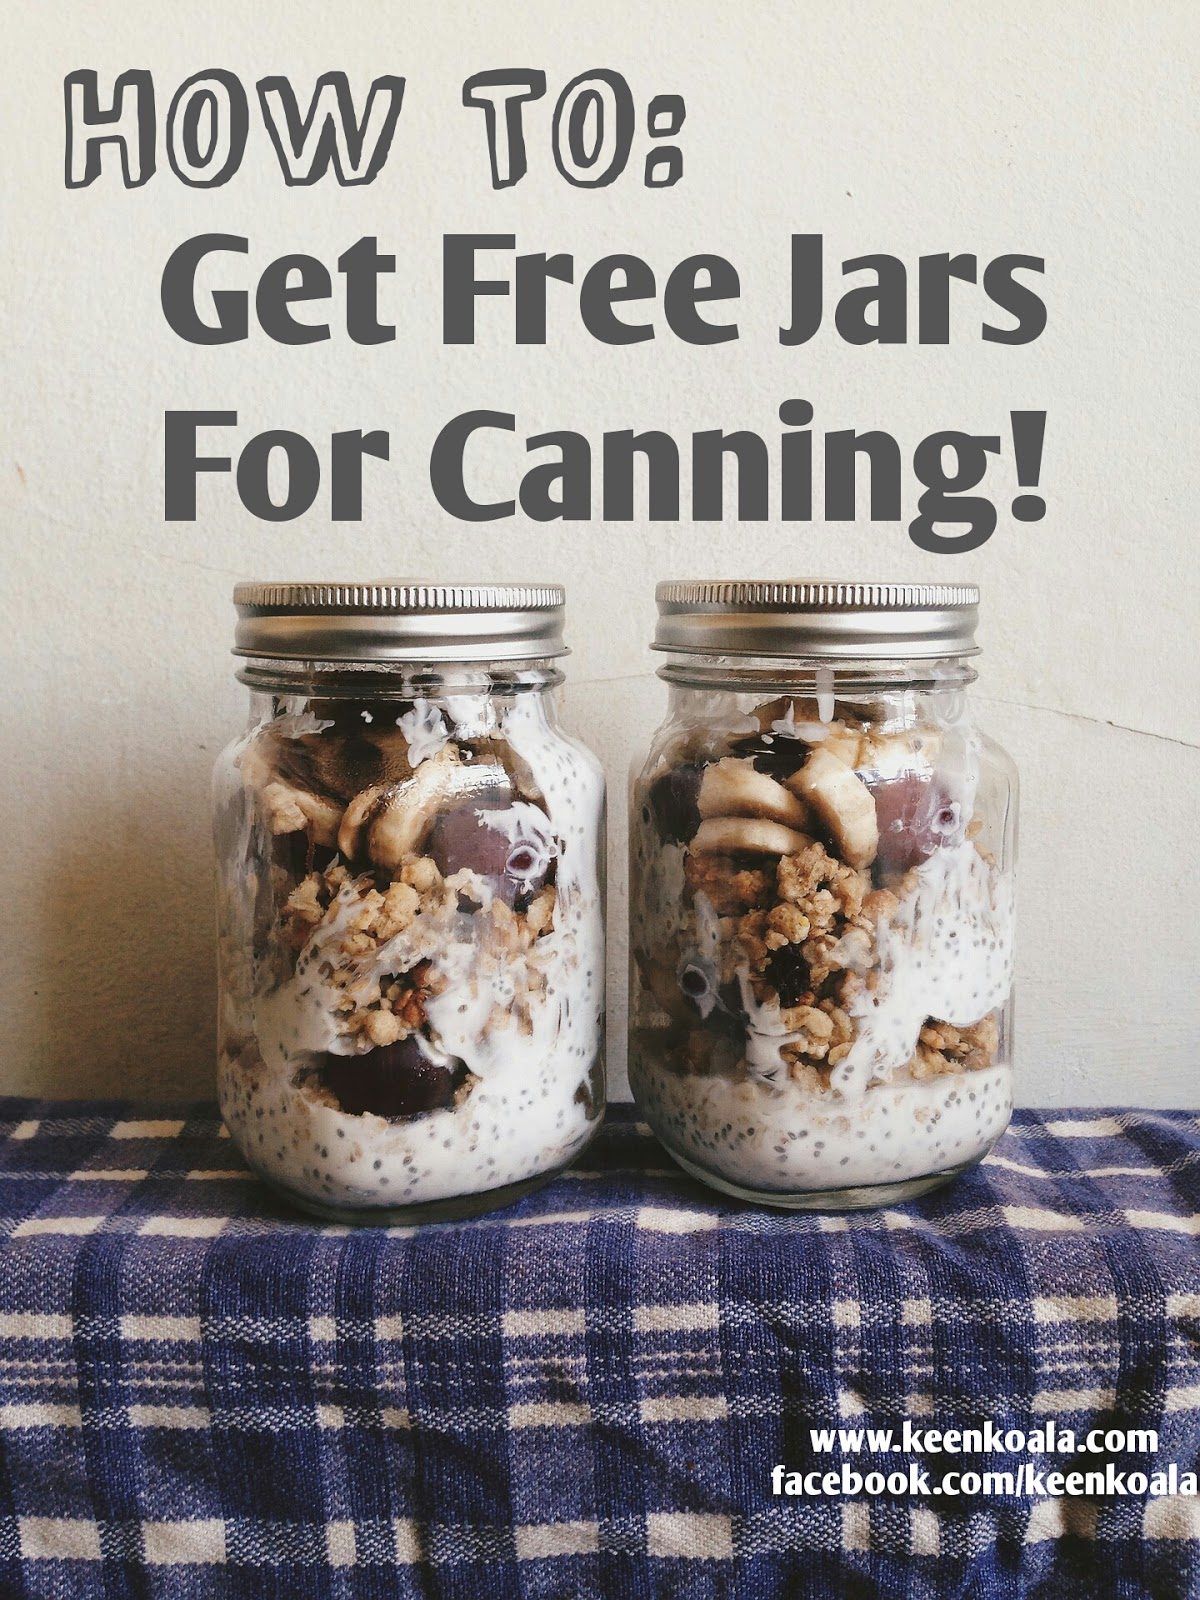 FREE CANNING SUPPLIES